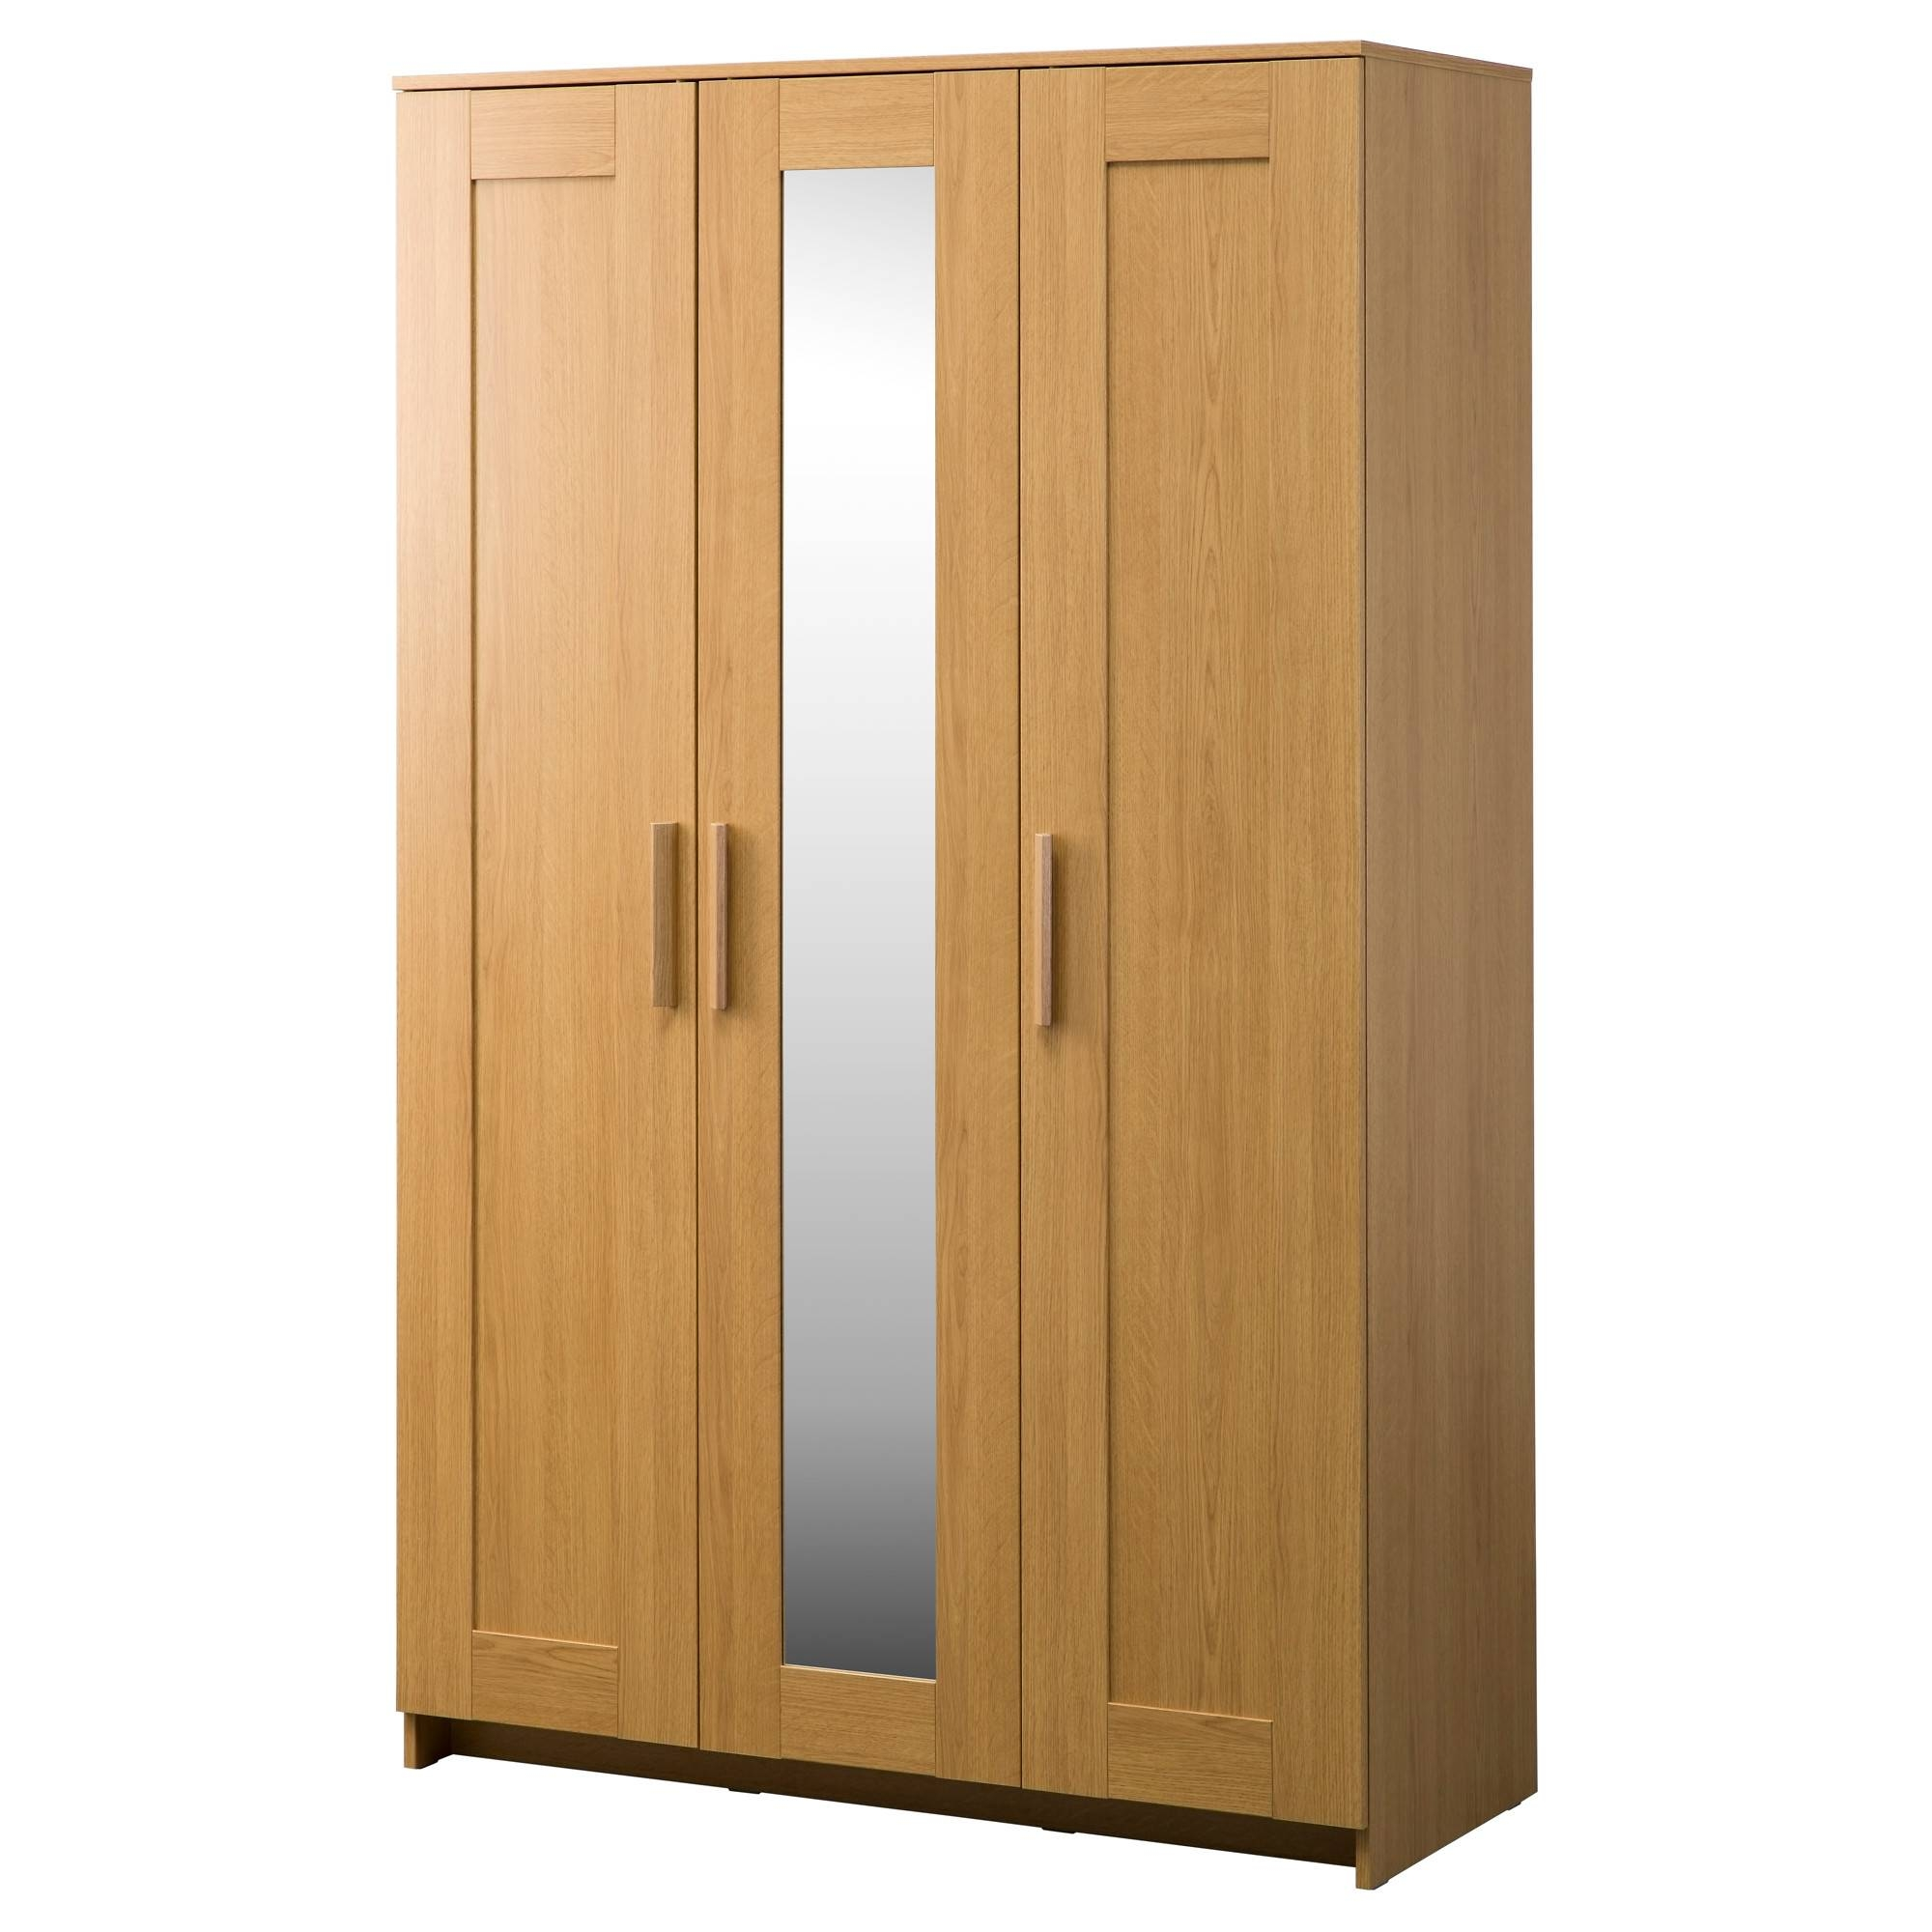 Wardrobes | Ikea regarding Oak Wardrobes For Sale (Image 14 of 15)